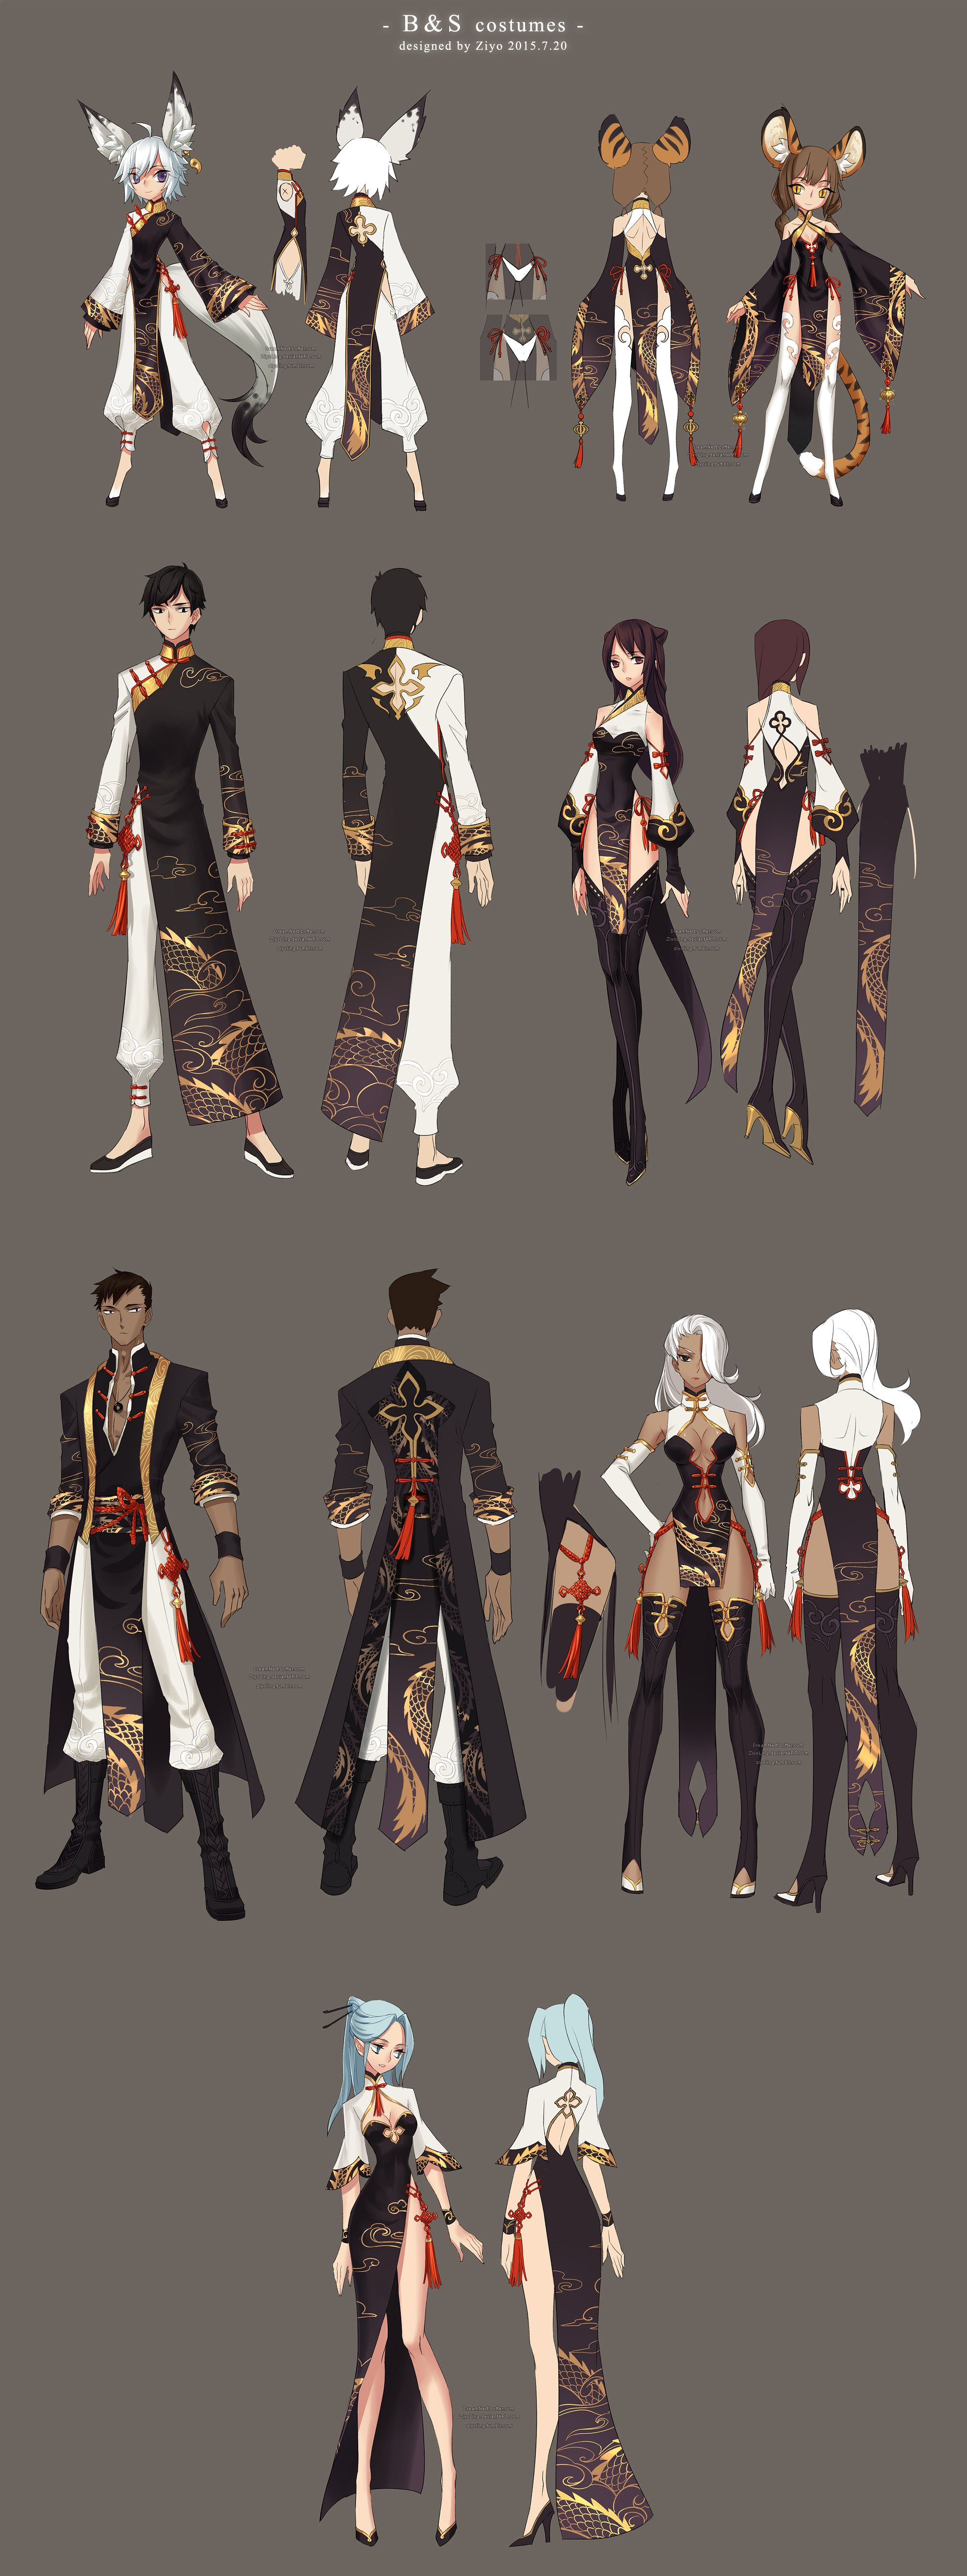 Bns Costumes Design By Ziyoling With Images Costume Design Character Design Inspiration Concept Art Characters